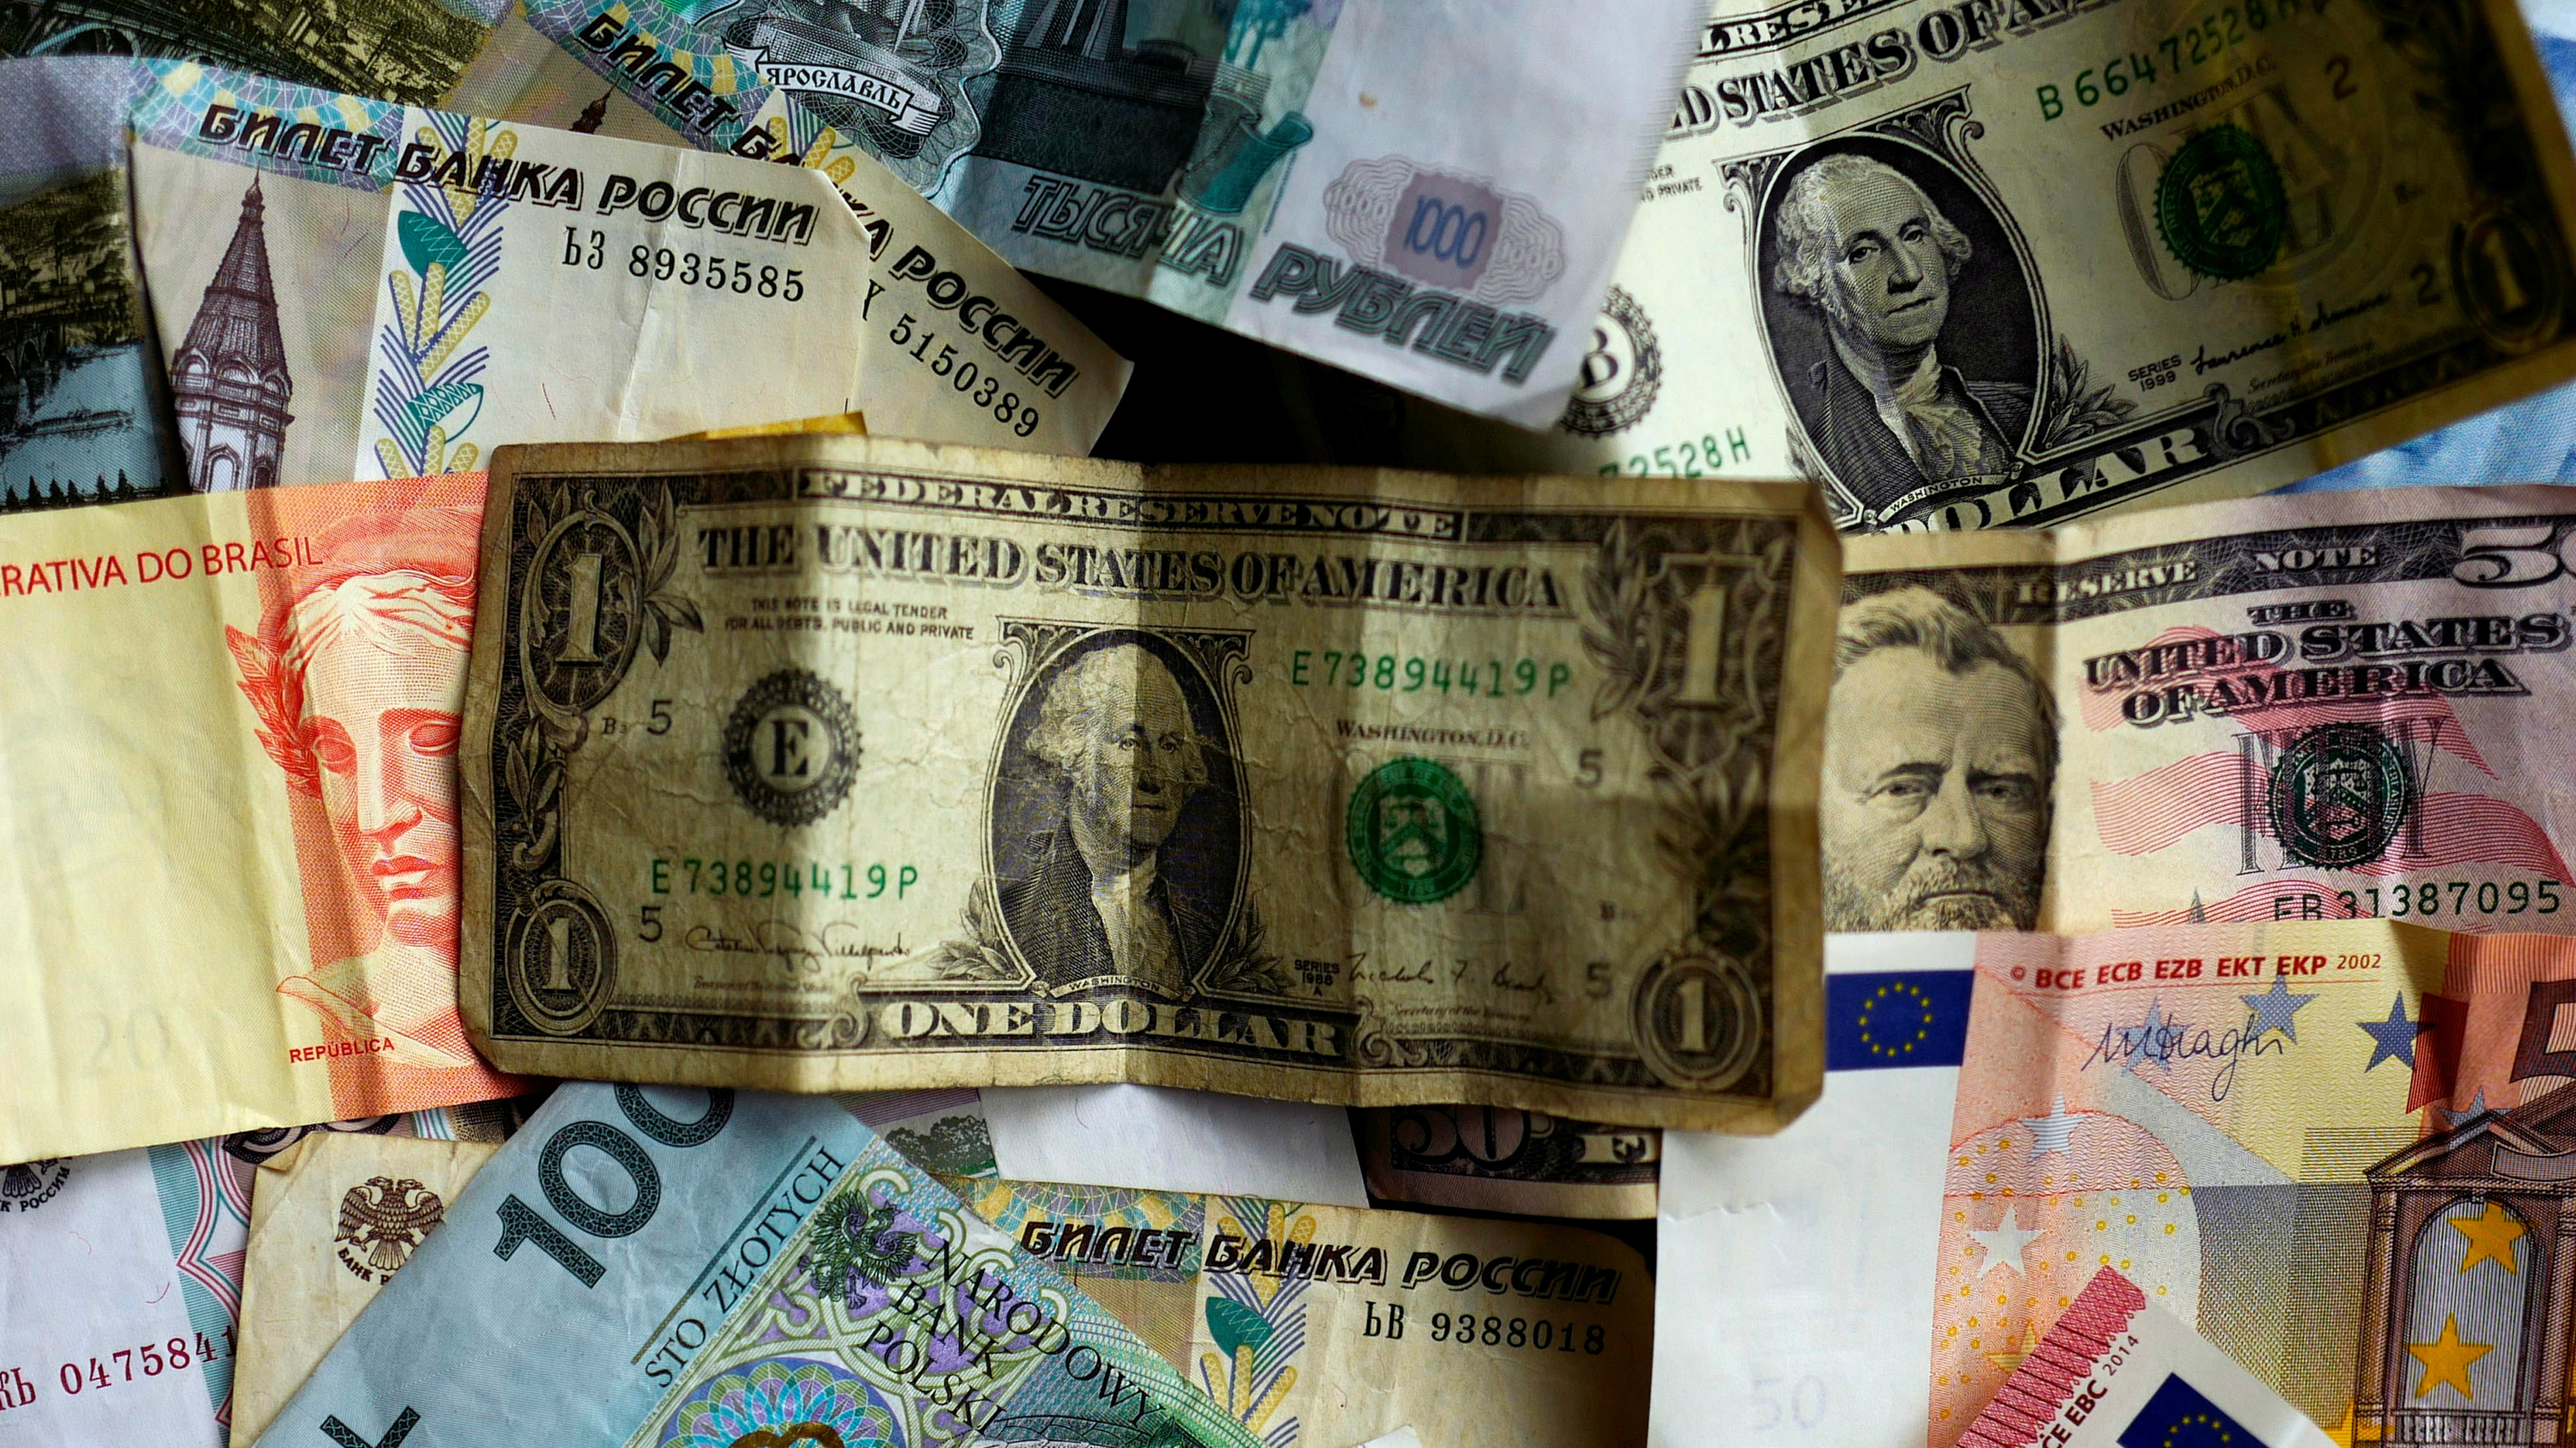 How many reserve currencies in the world 5 or 3